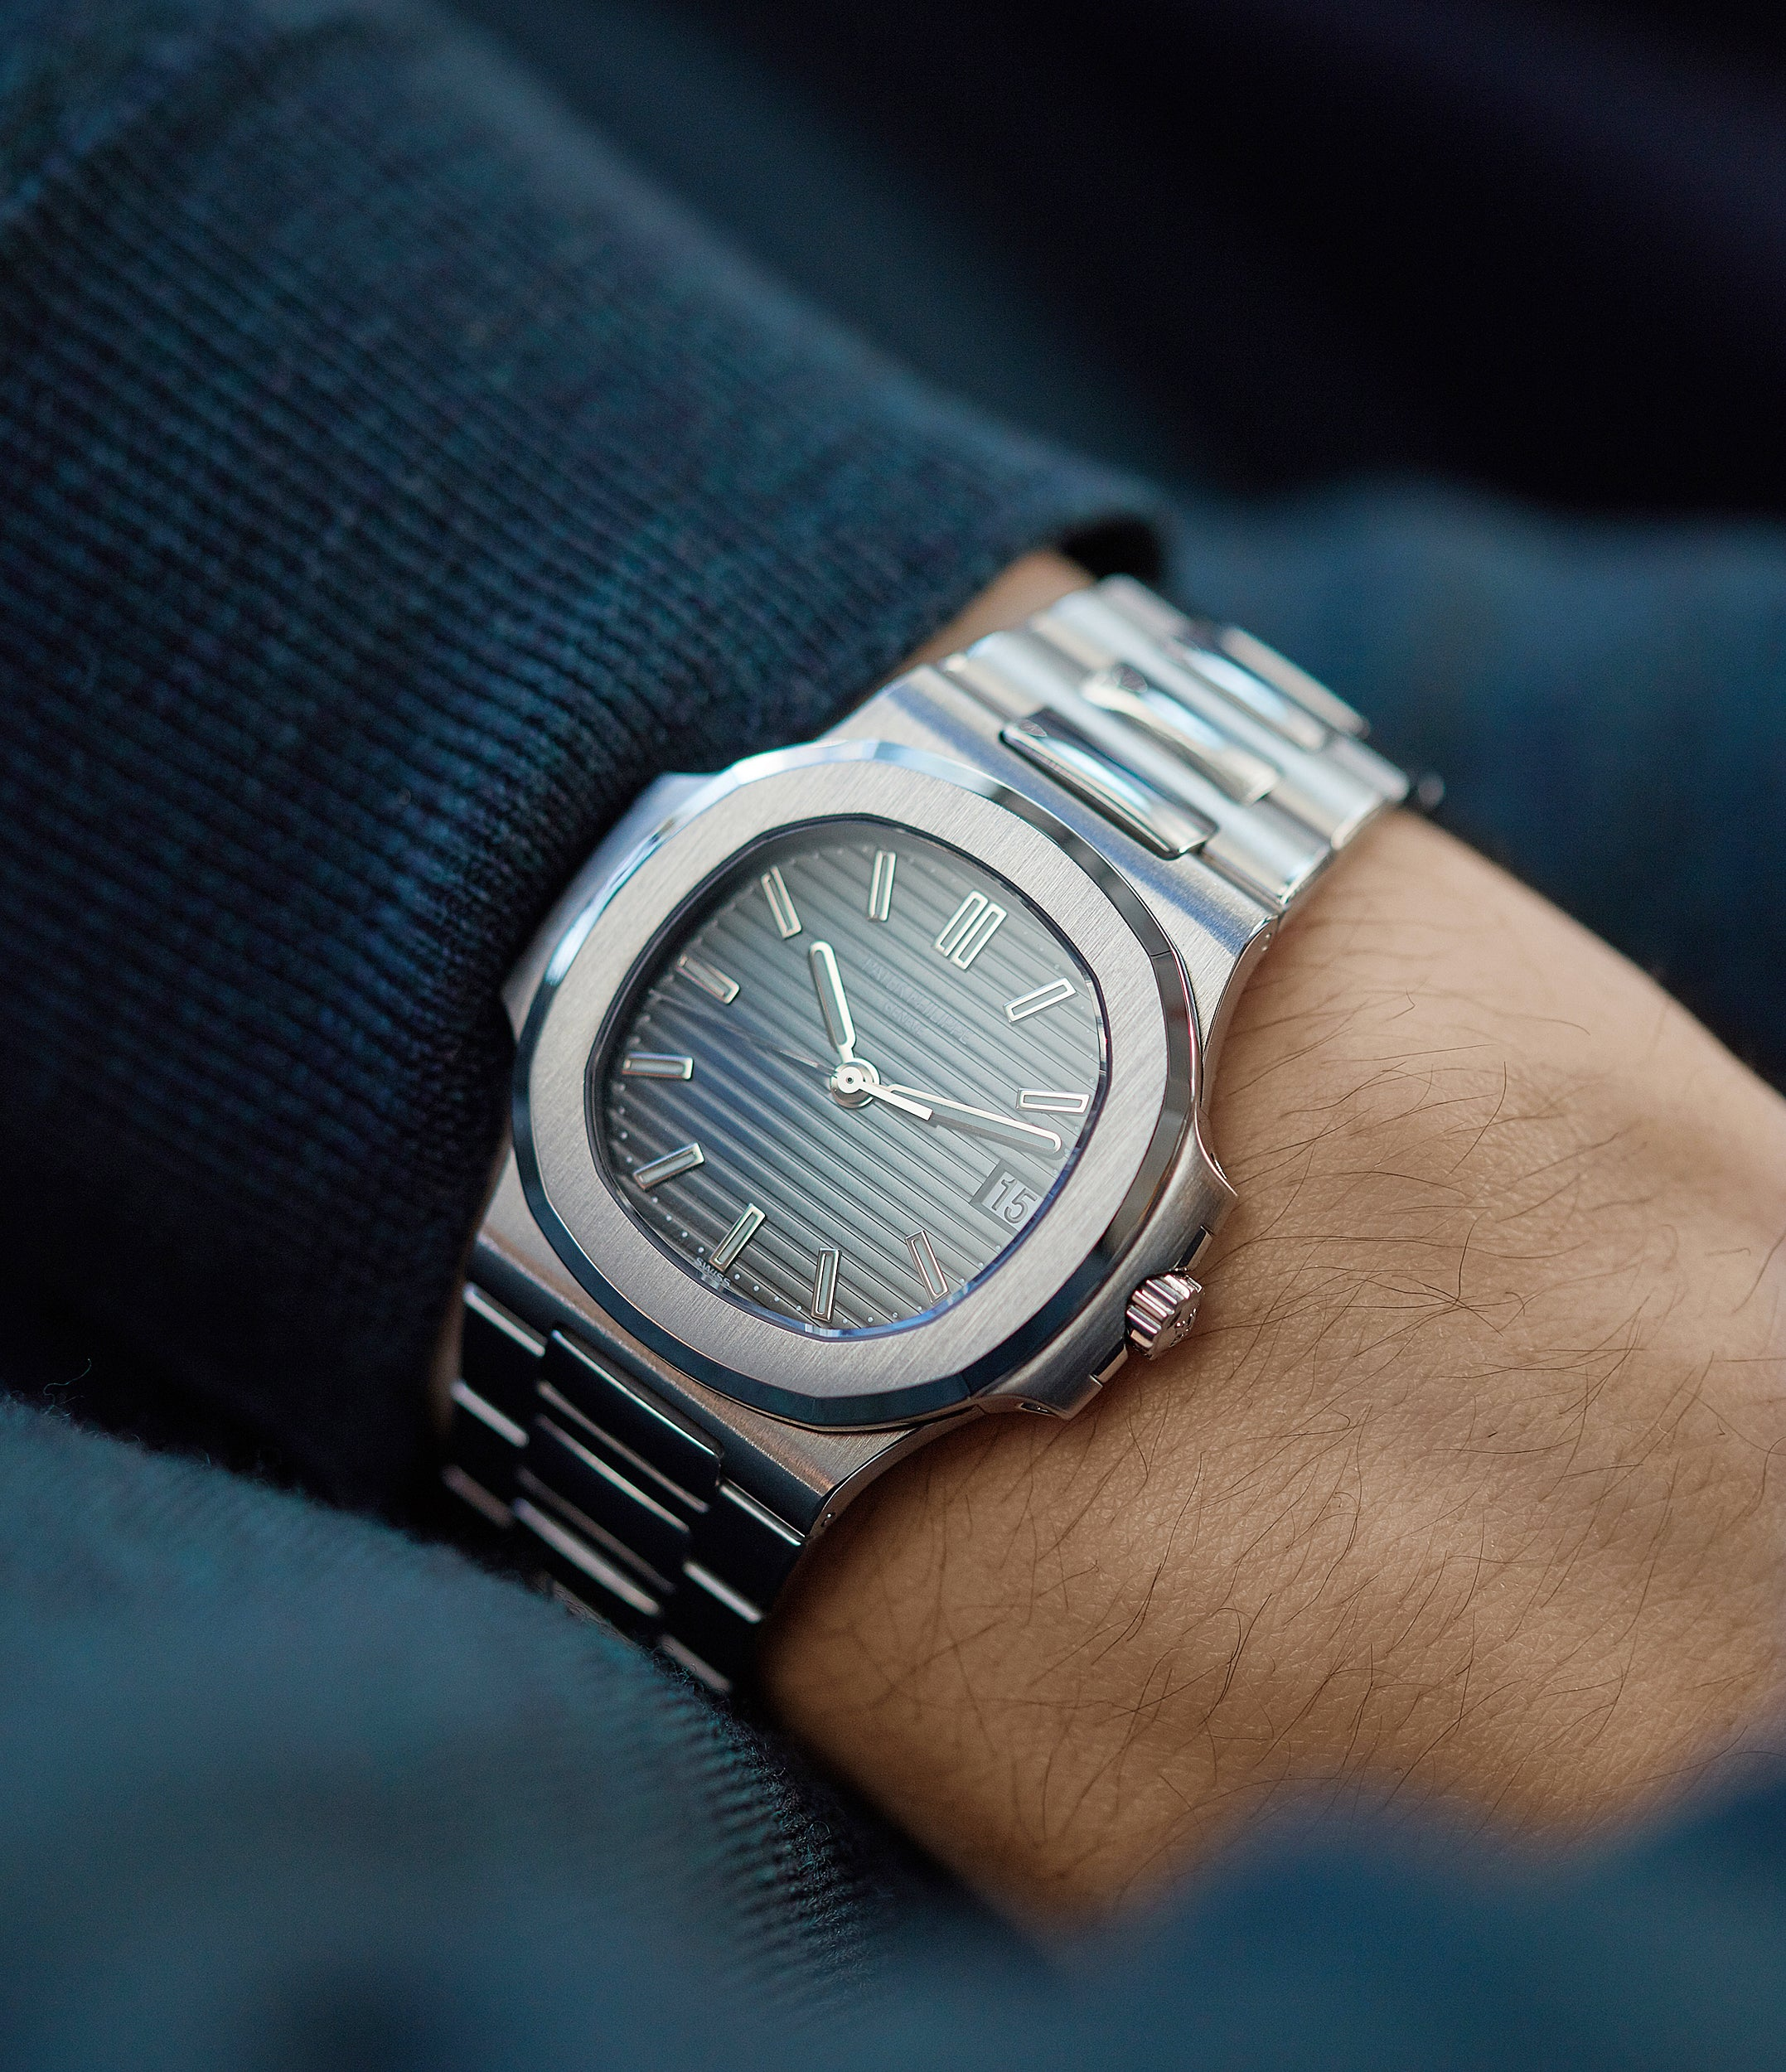 The 5800 marked the return of the mid-size Nautilus, previously discontinued in the early 00s (as the ref. 3800)